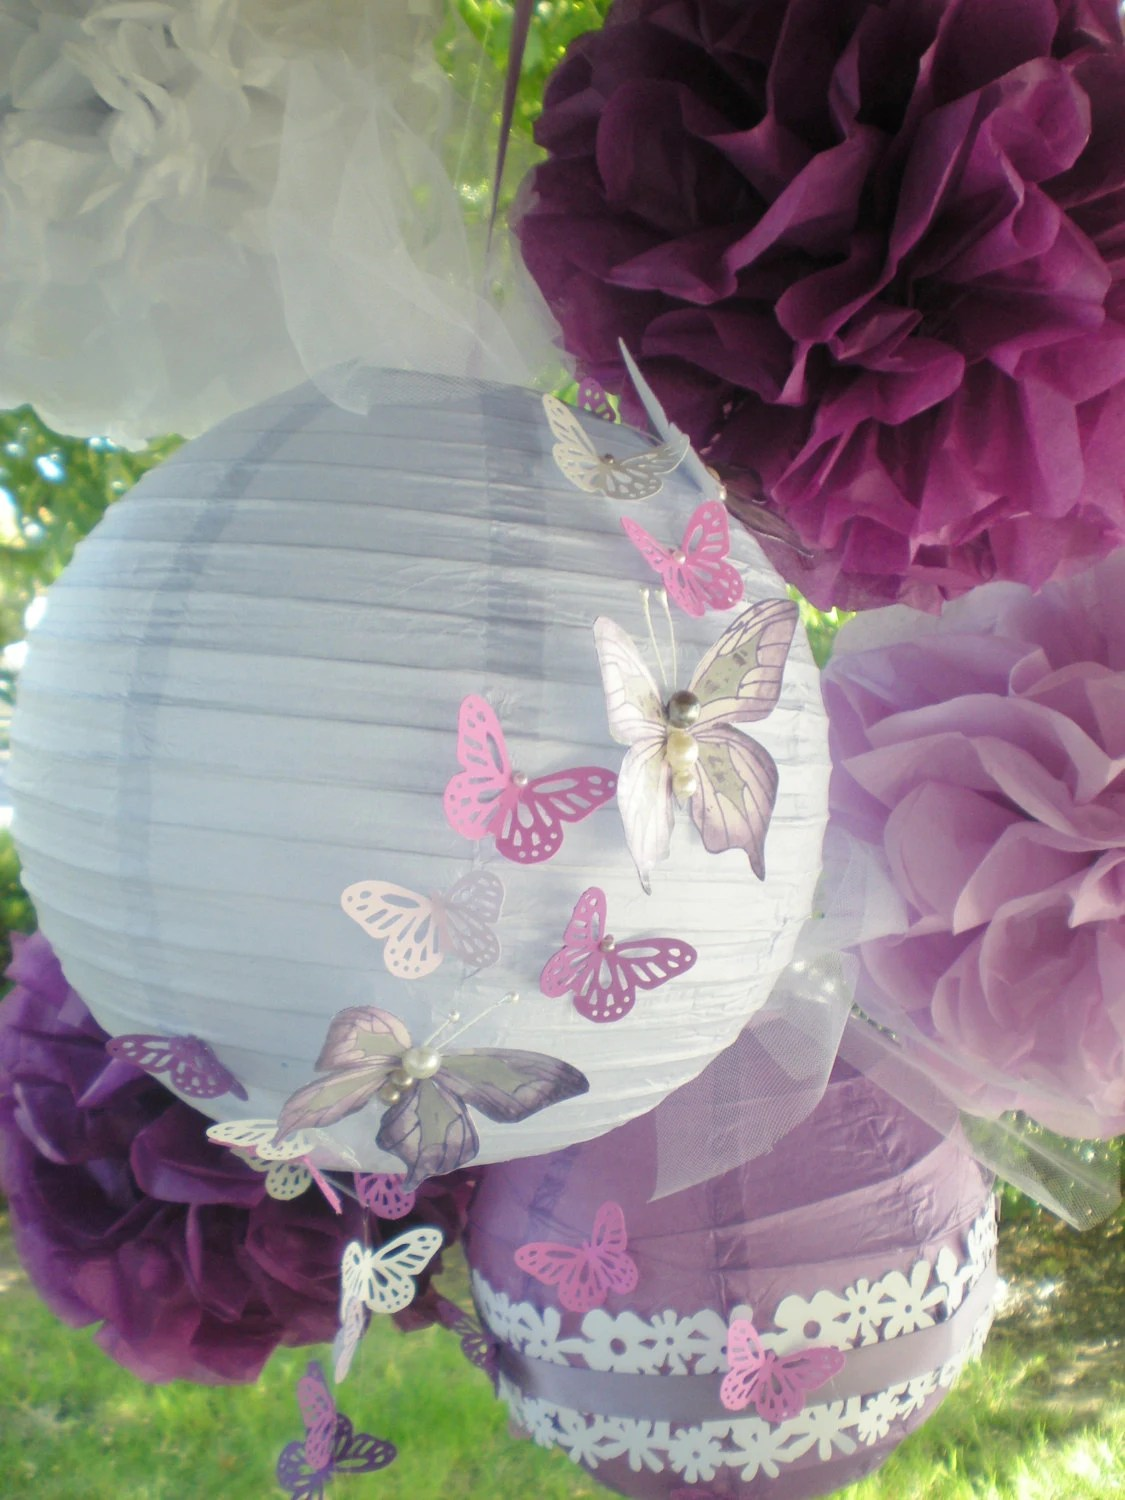 Purple pom poms and paper lanterns radiant orchid with hand-painted butterflies, set of 4 pom poms and two lanterns - DellaCartaDecor